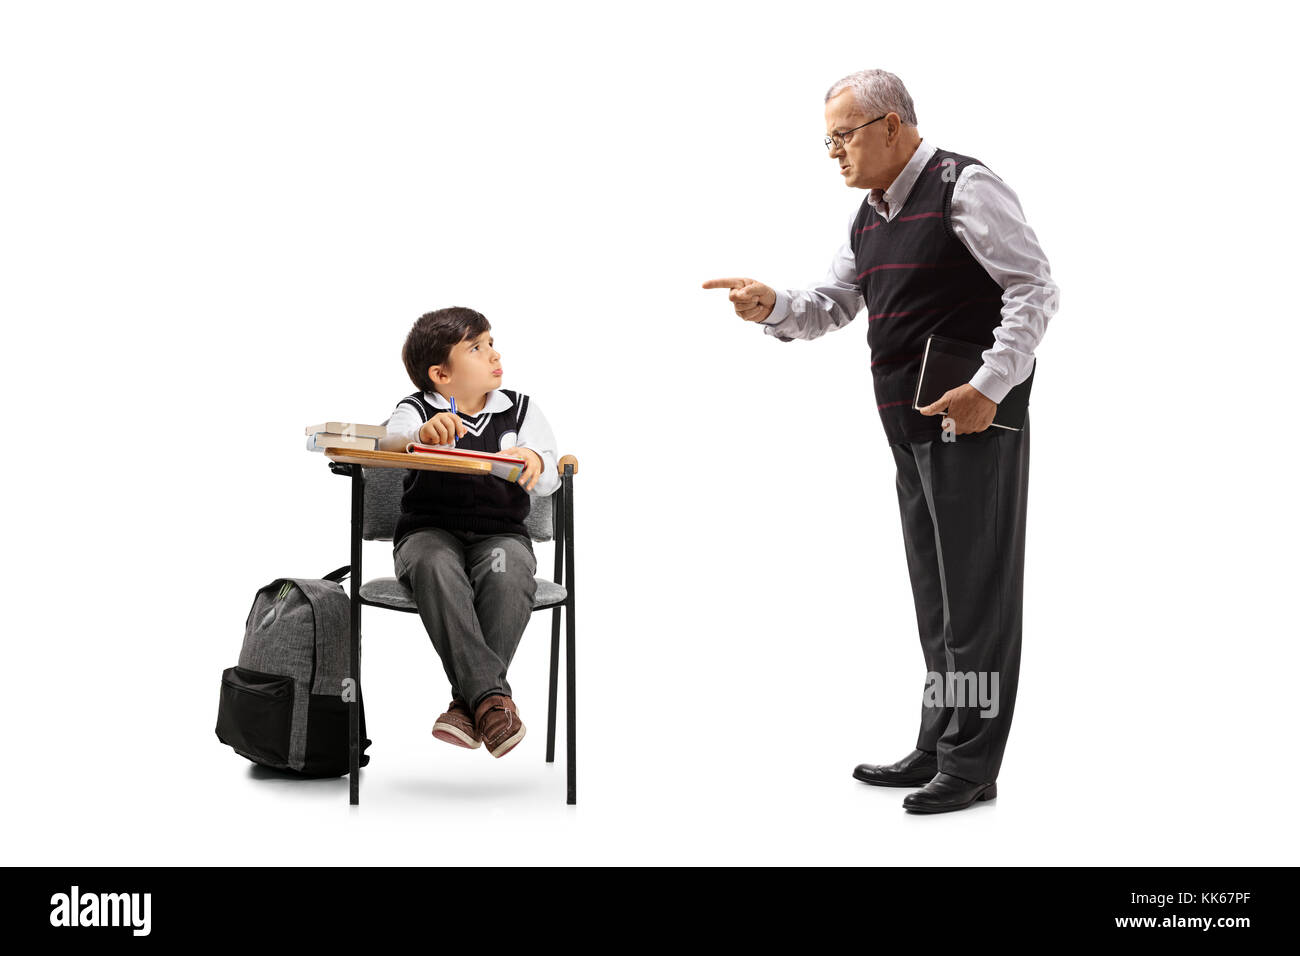 Teacher scolding a little schoolboy seated in a school chair isolated on white background - Stock Image